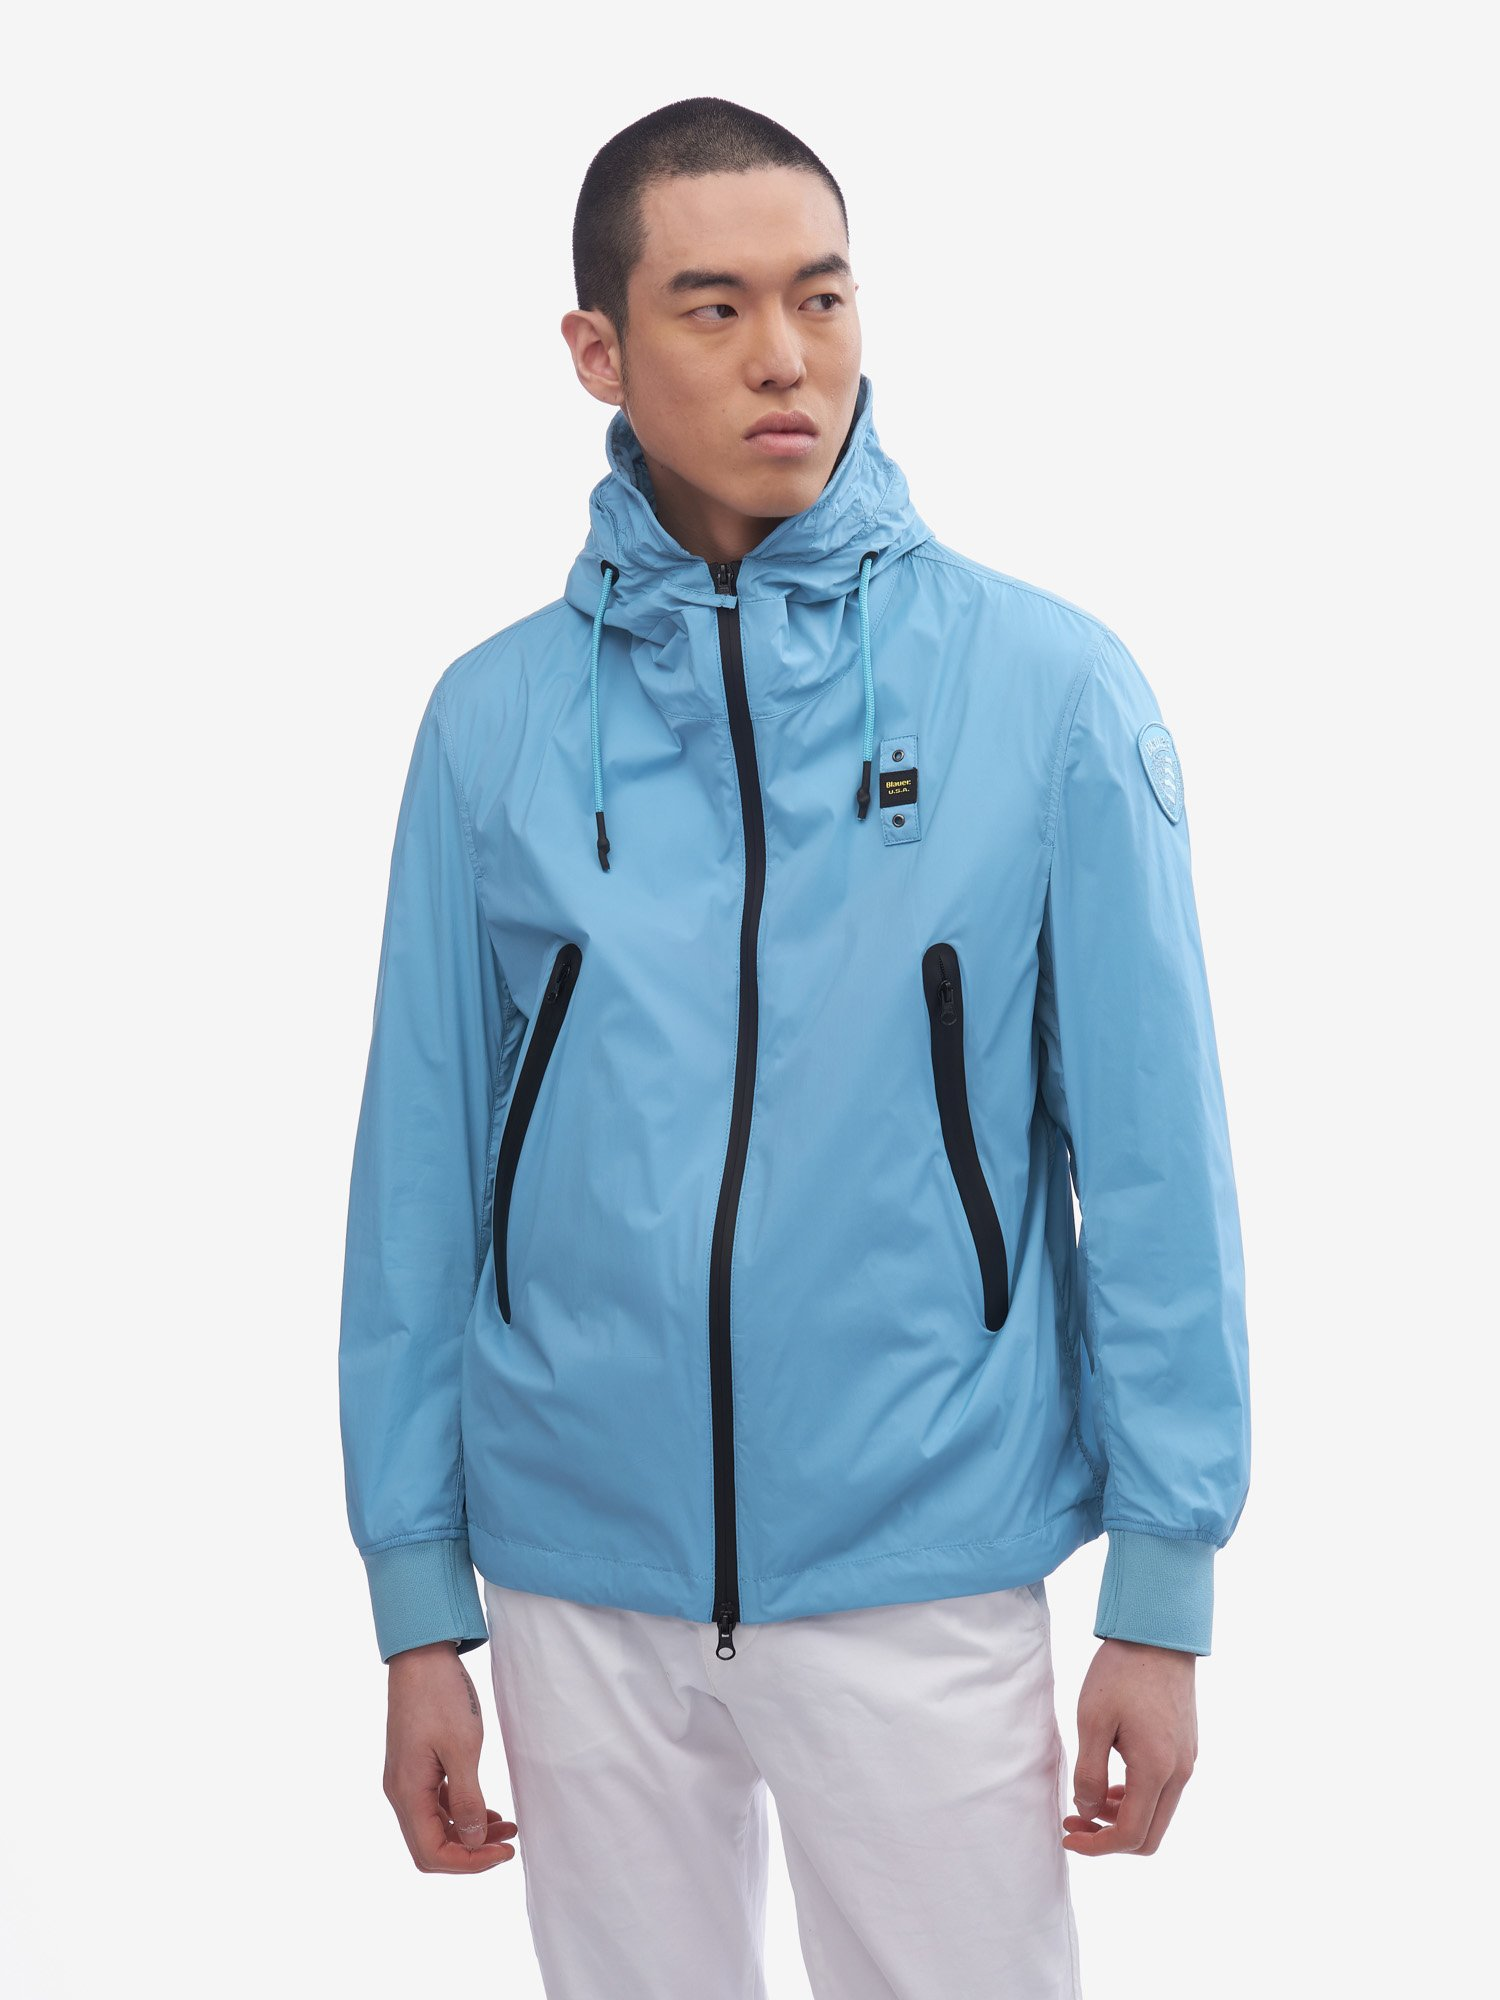 SOUTHERLAND MATTE JACKET WITH HOOD - Blauer